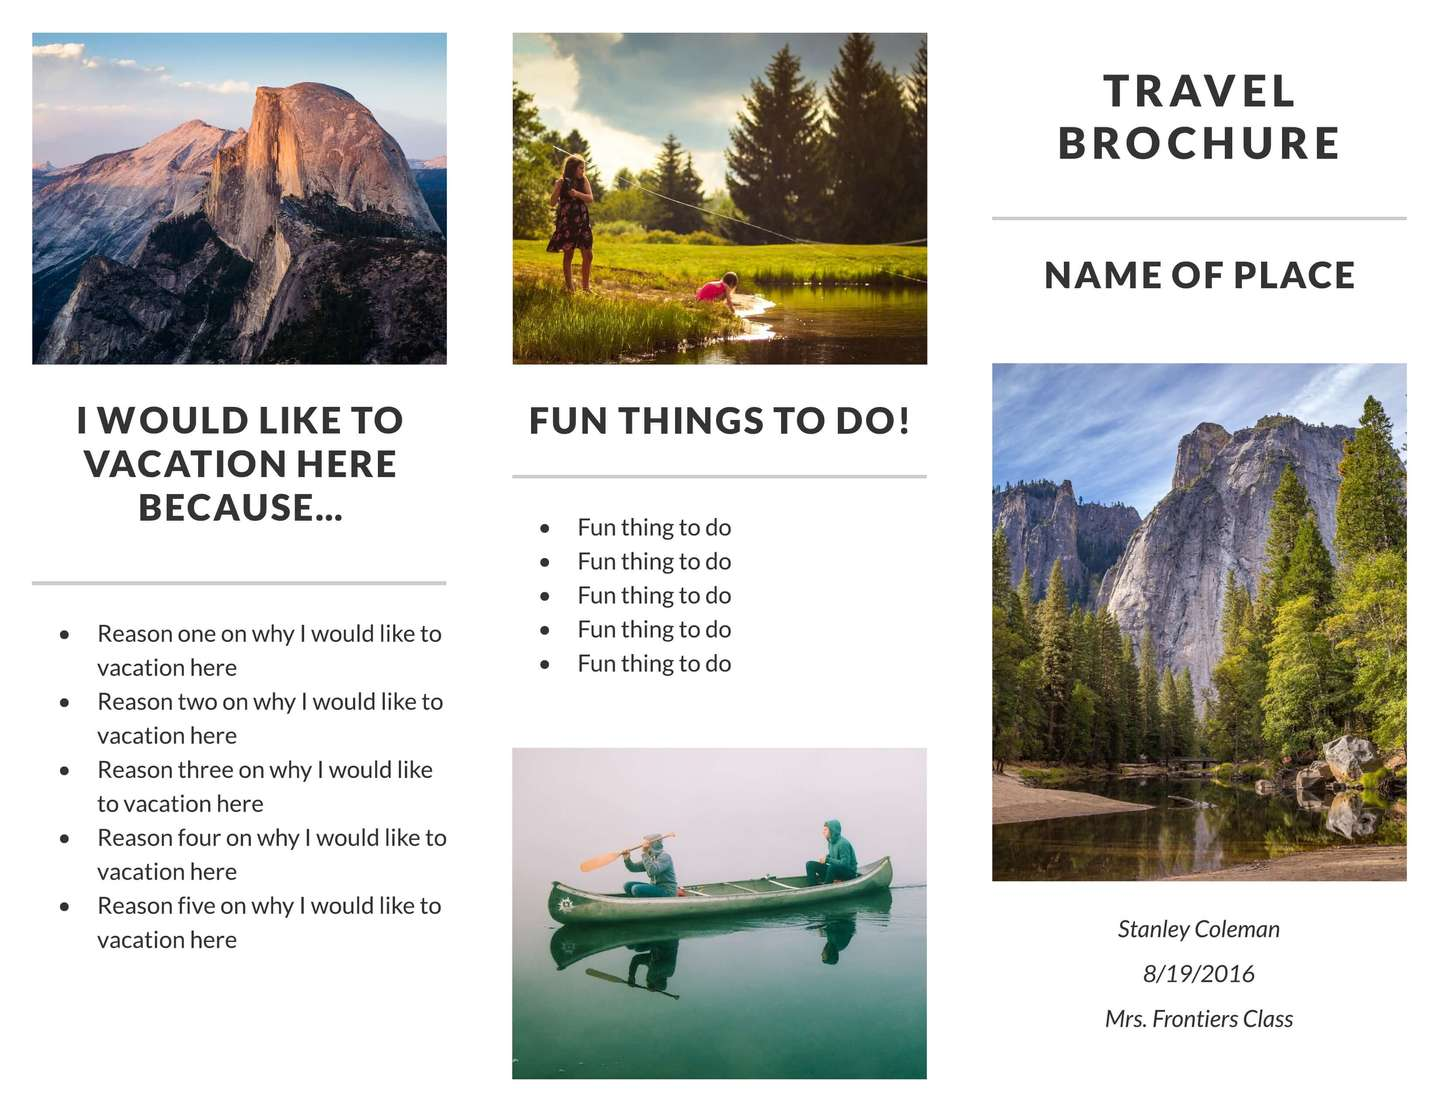 Free Travel Brochure Templates & Examples [8 Free Templates]